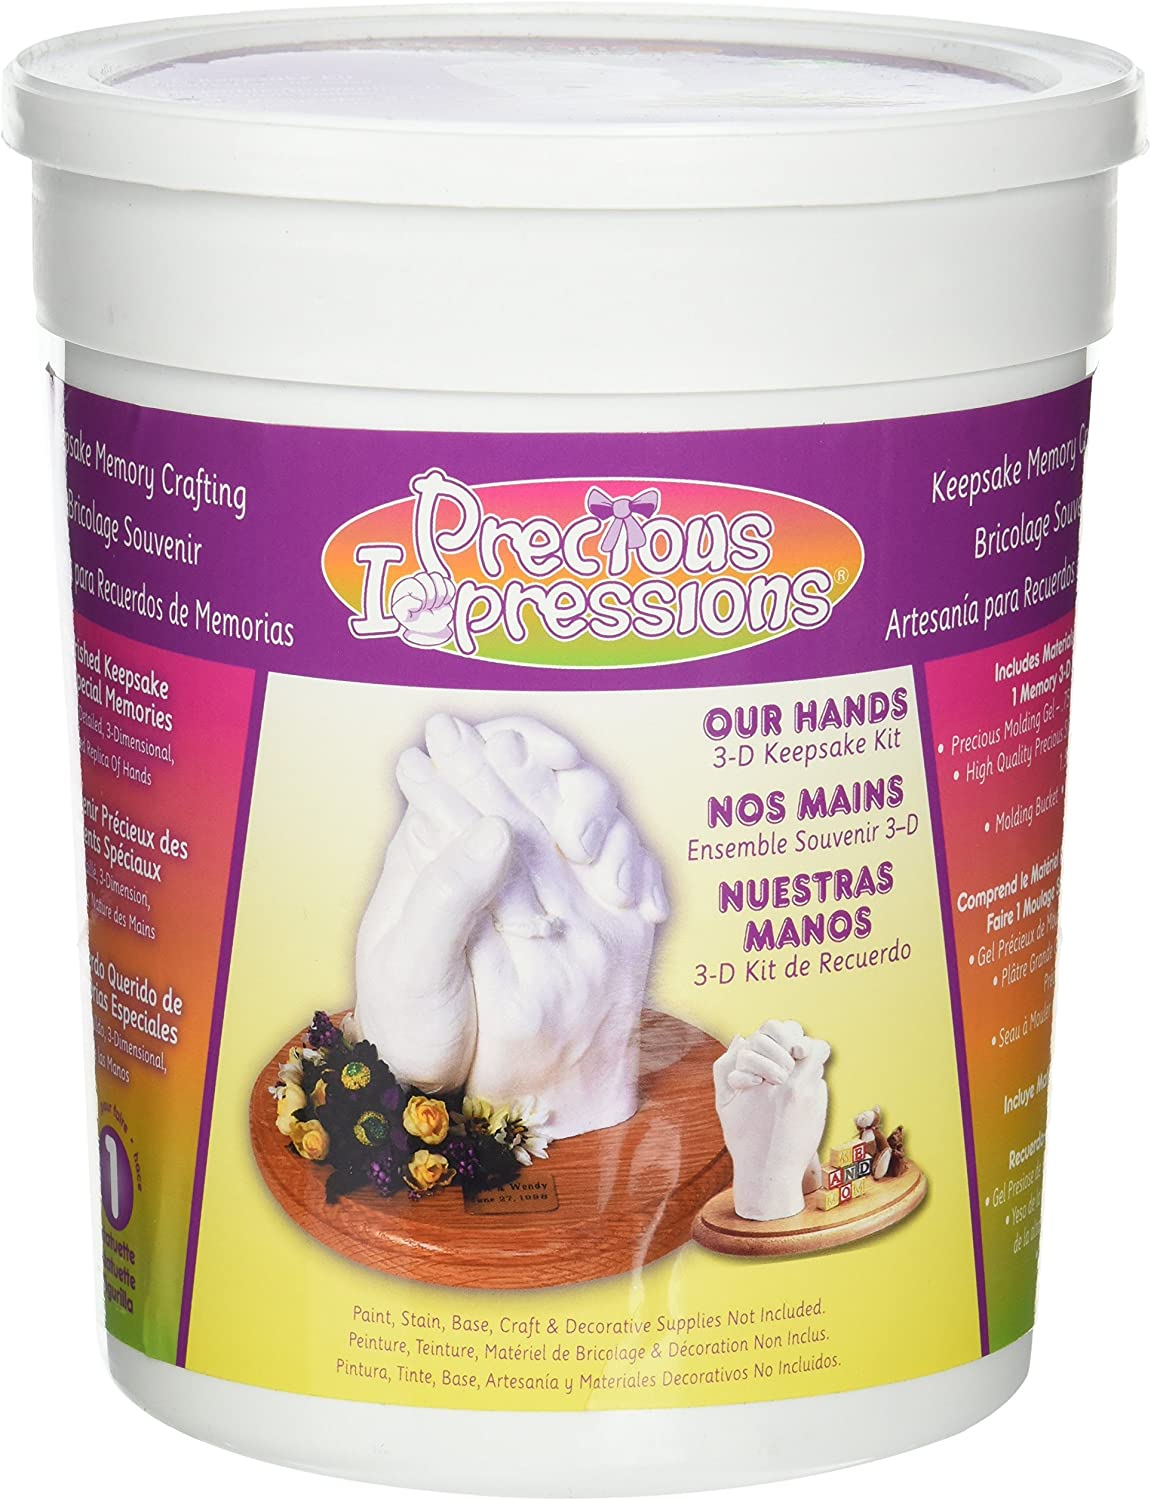 B001CDQGV6 Darice Precious Impressions Memory Hands Keepsake Kit – Commemorate Milestone Moments, 3-D Hand Plaster Mold and Keepsake Kit Includes Gel, Plaster, Bucket and Instructions – Makes a Great Kids Project 91SesxtHbLL